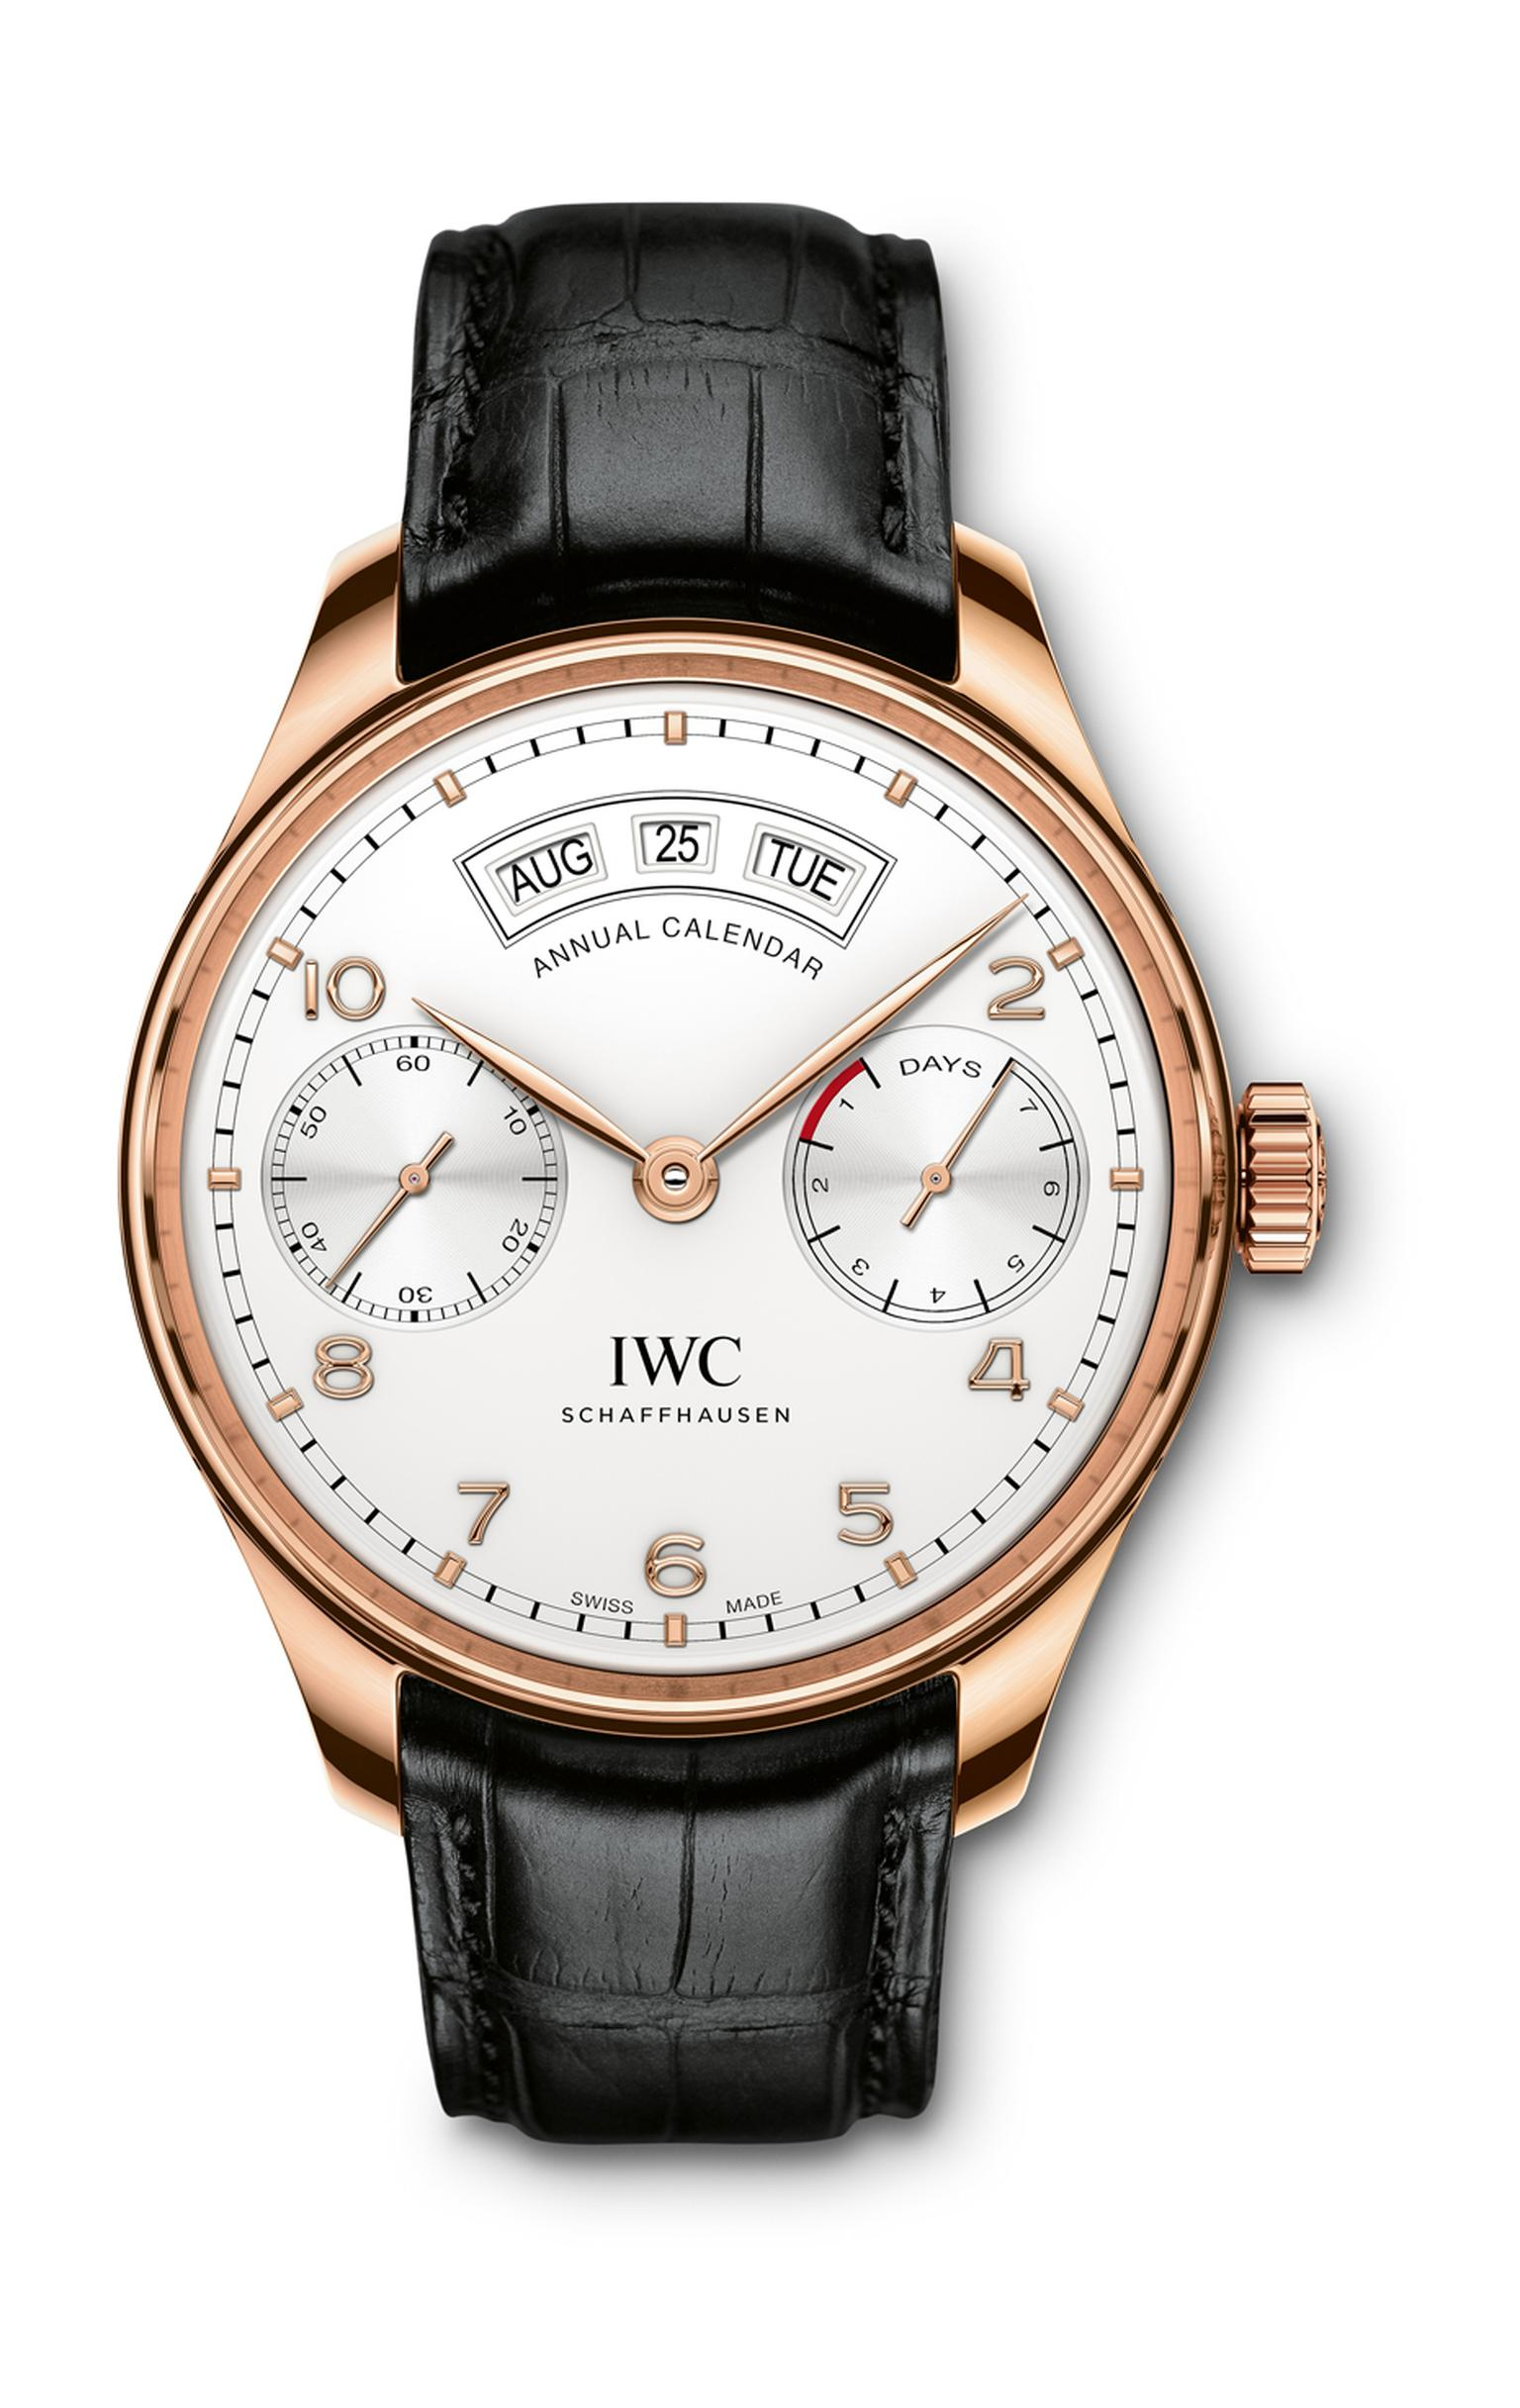 The aesthetics of IWC's new Annual Calendar watch are remarkably similar to the original 1939 Portugieser, with its large 44.2mm stainless steel or red gold case, grooved bezel, railway-track chapter ring and Arabic numerals. The two subdials display smal